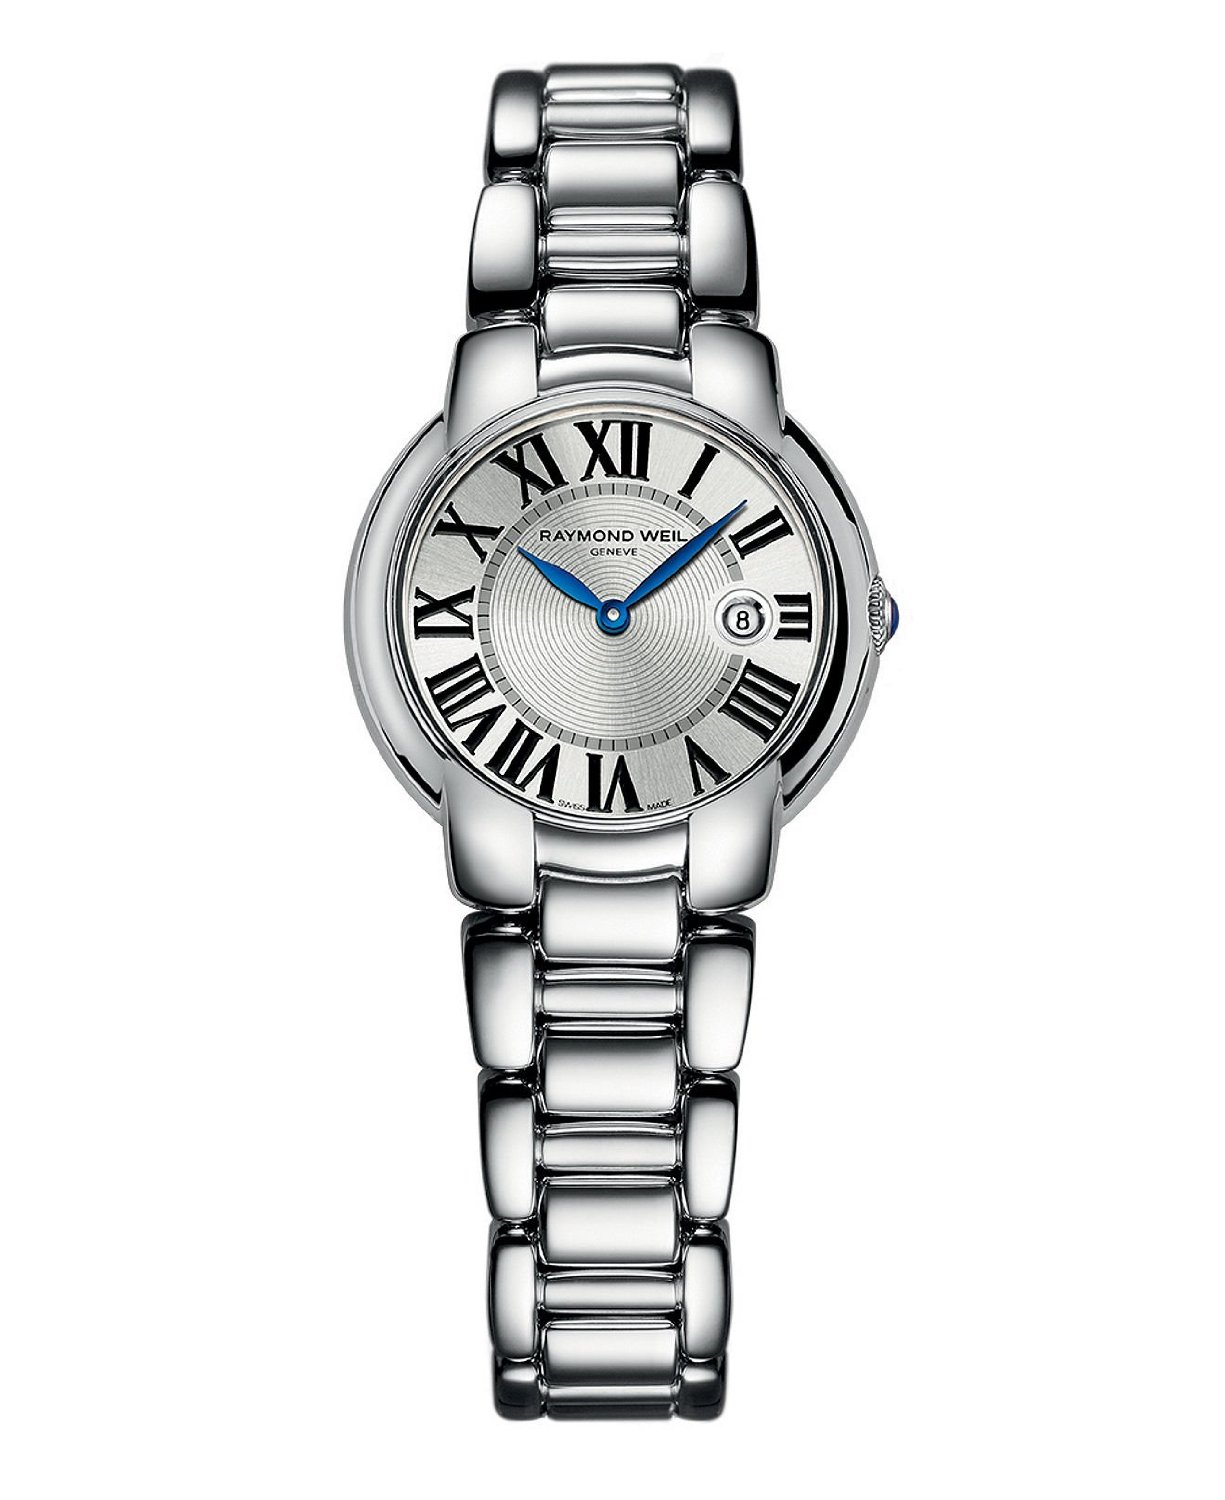 Raymond Weil Jasmine Ladies Stainless Steel Watch